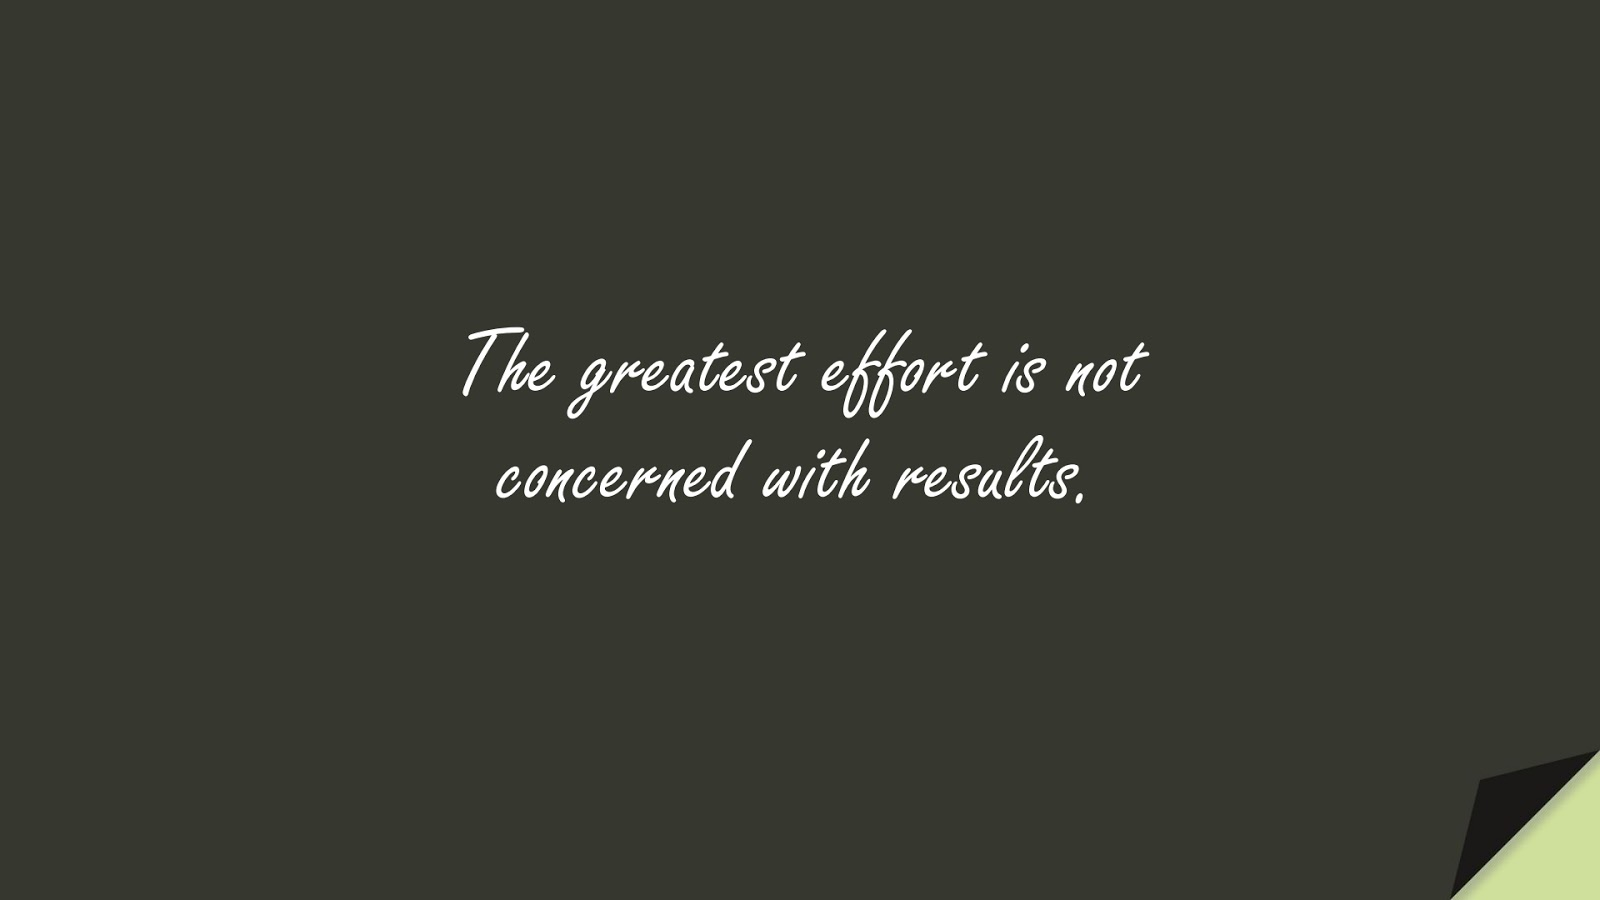 The greatest effort is not concerned with results.FALSE